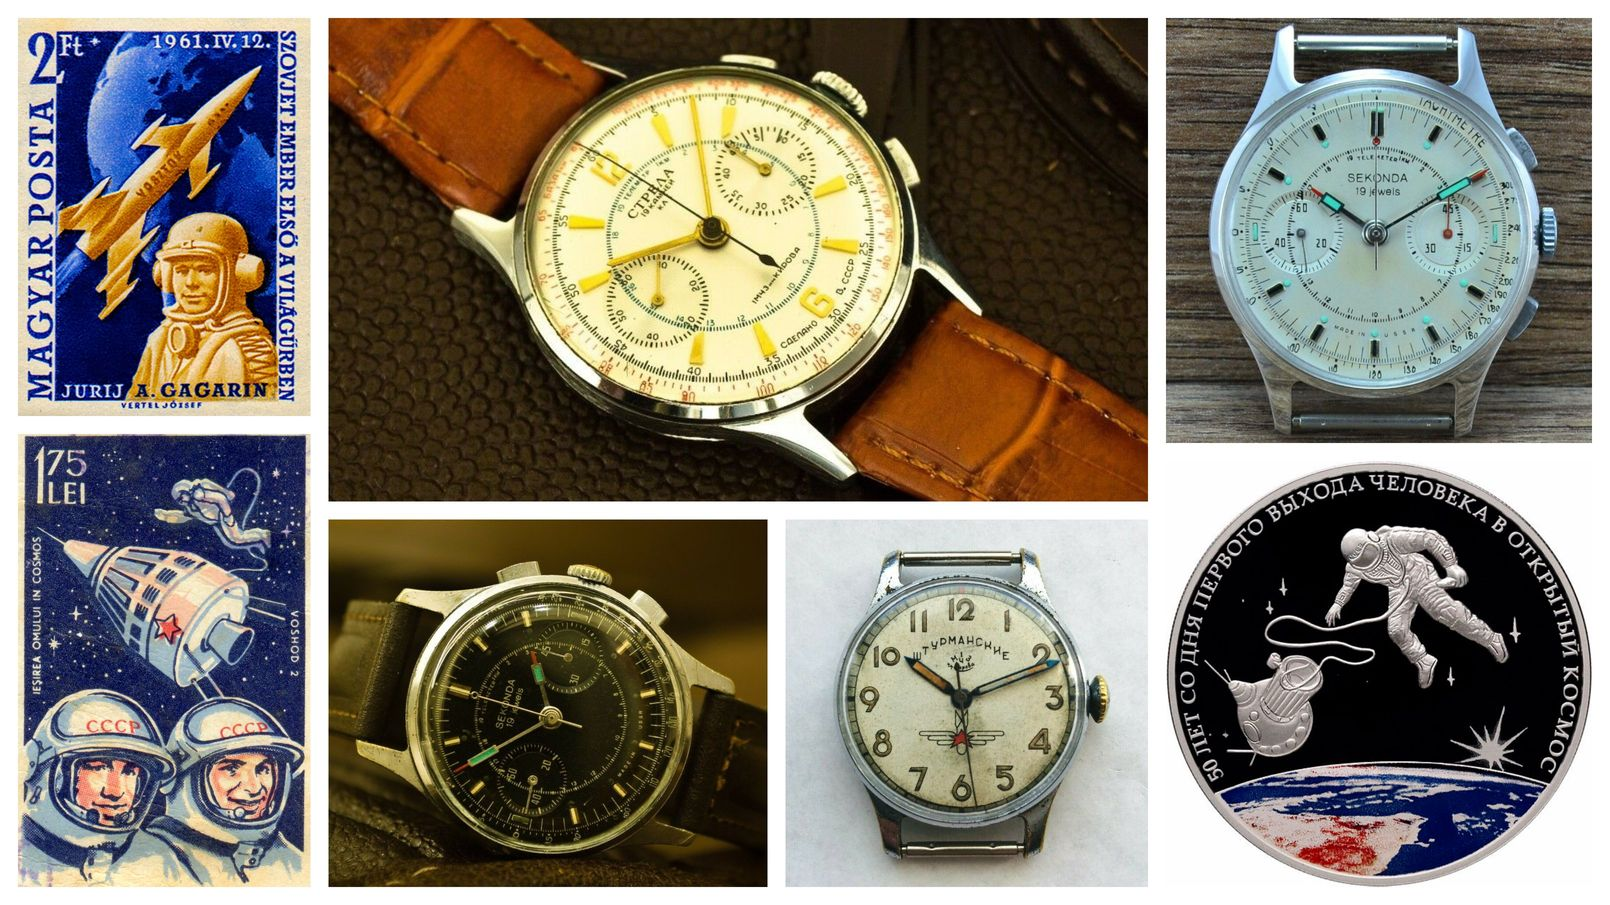 This article focuses on the watches that were used in Russian Vostok, Voskhod and Soyuz space programs and worn by cosmonauts Gagarin, Leonov and Gubarev.